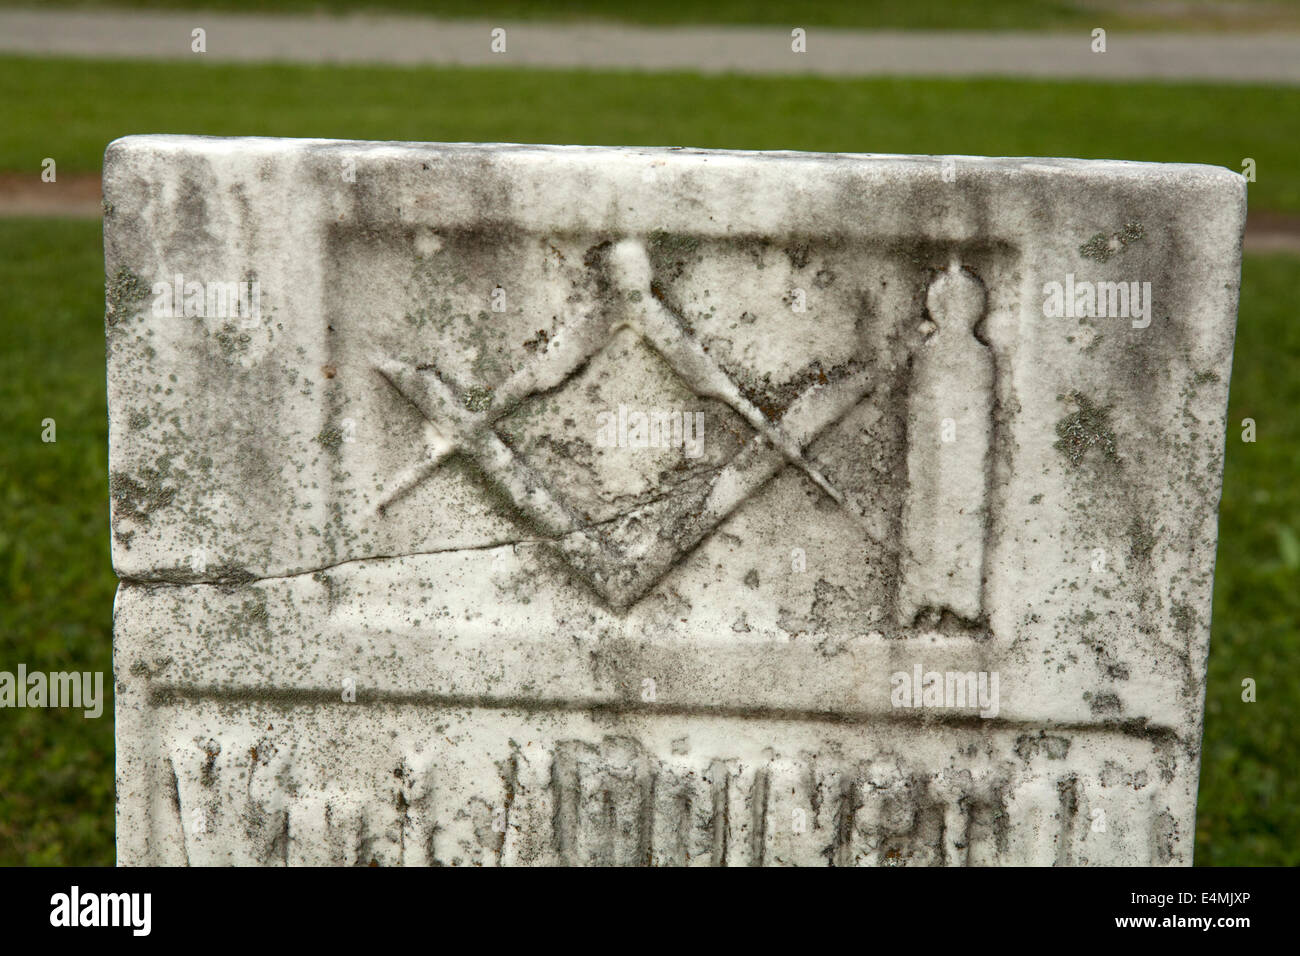 Gravestone Symbols Stock Photos Gravestone Symbols Stock Images